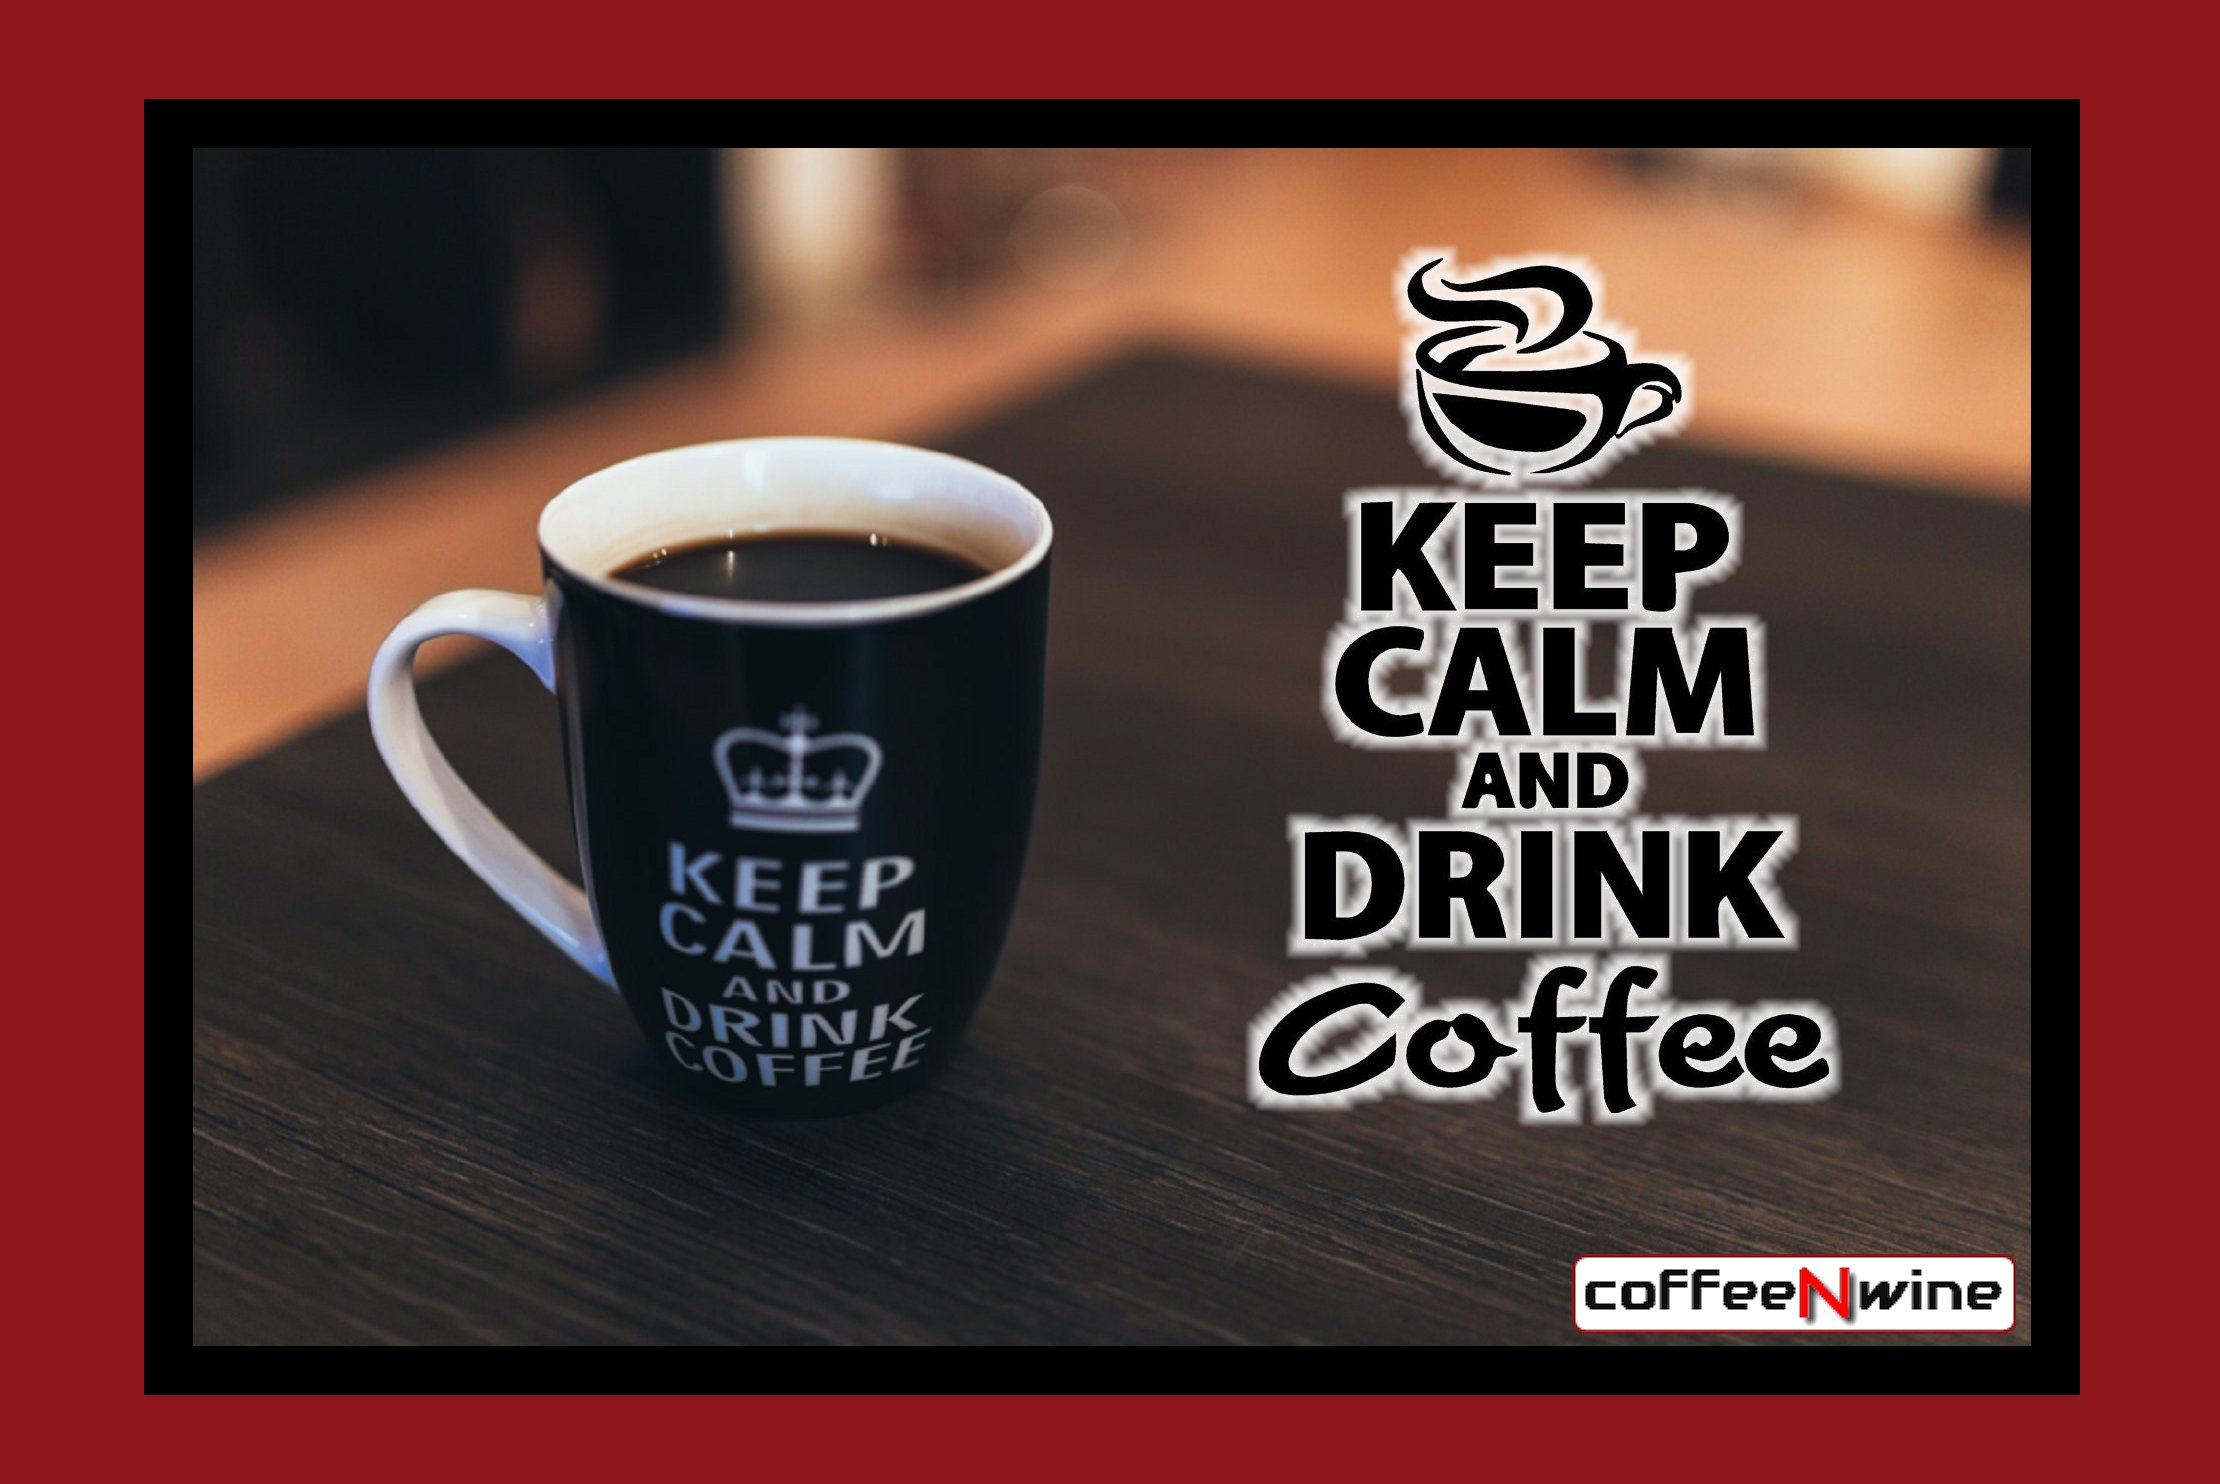 Keep Calm And Drink Coffee Image